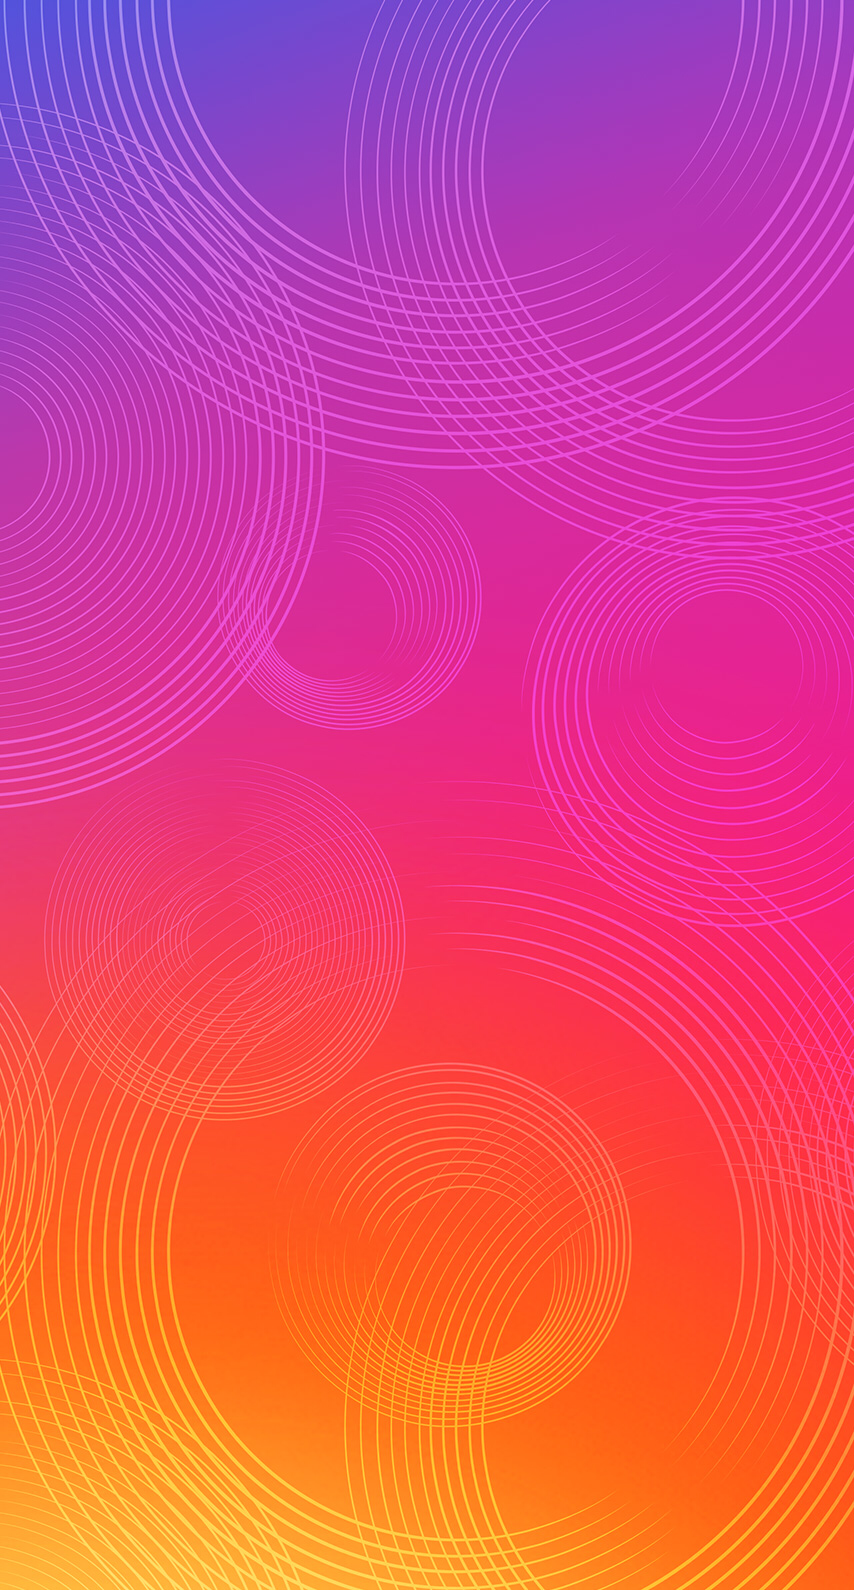 iphone, abstract, colorful, sonos - wallpaper | wallpapers